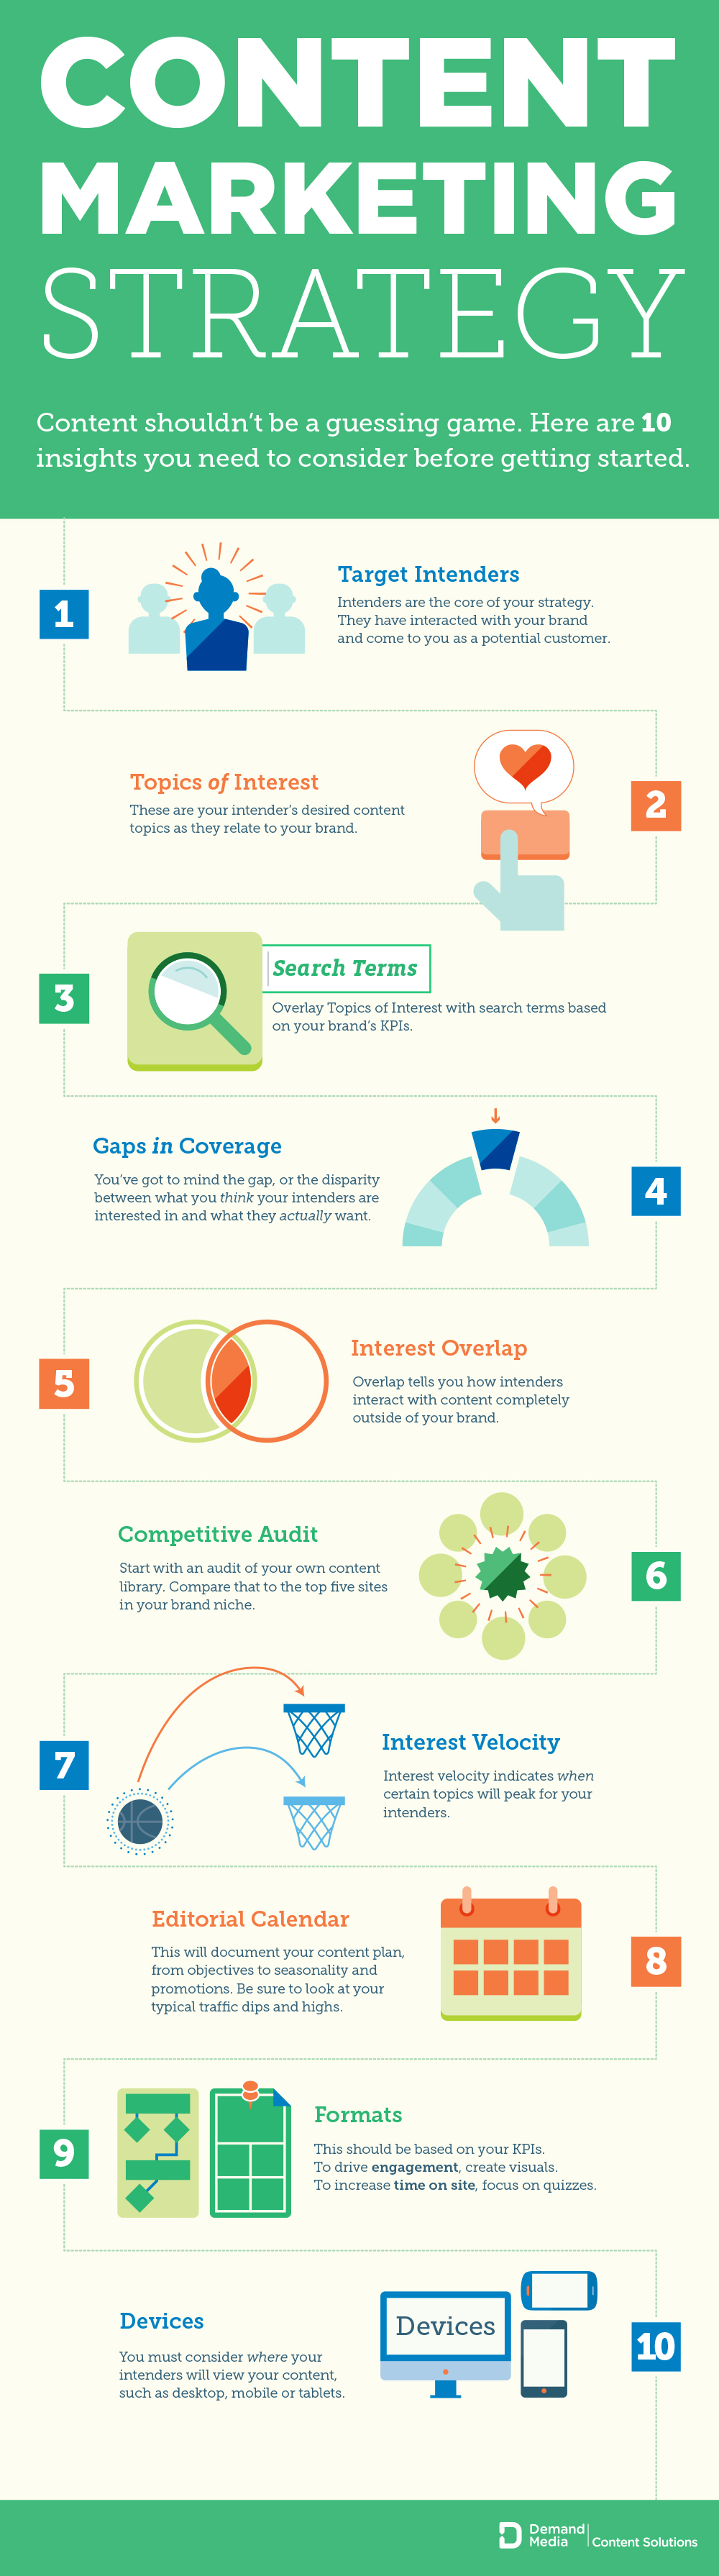 Content Marketing Insights infographic